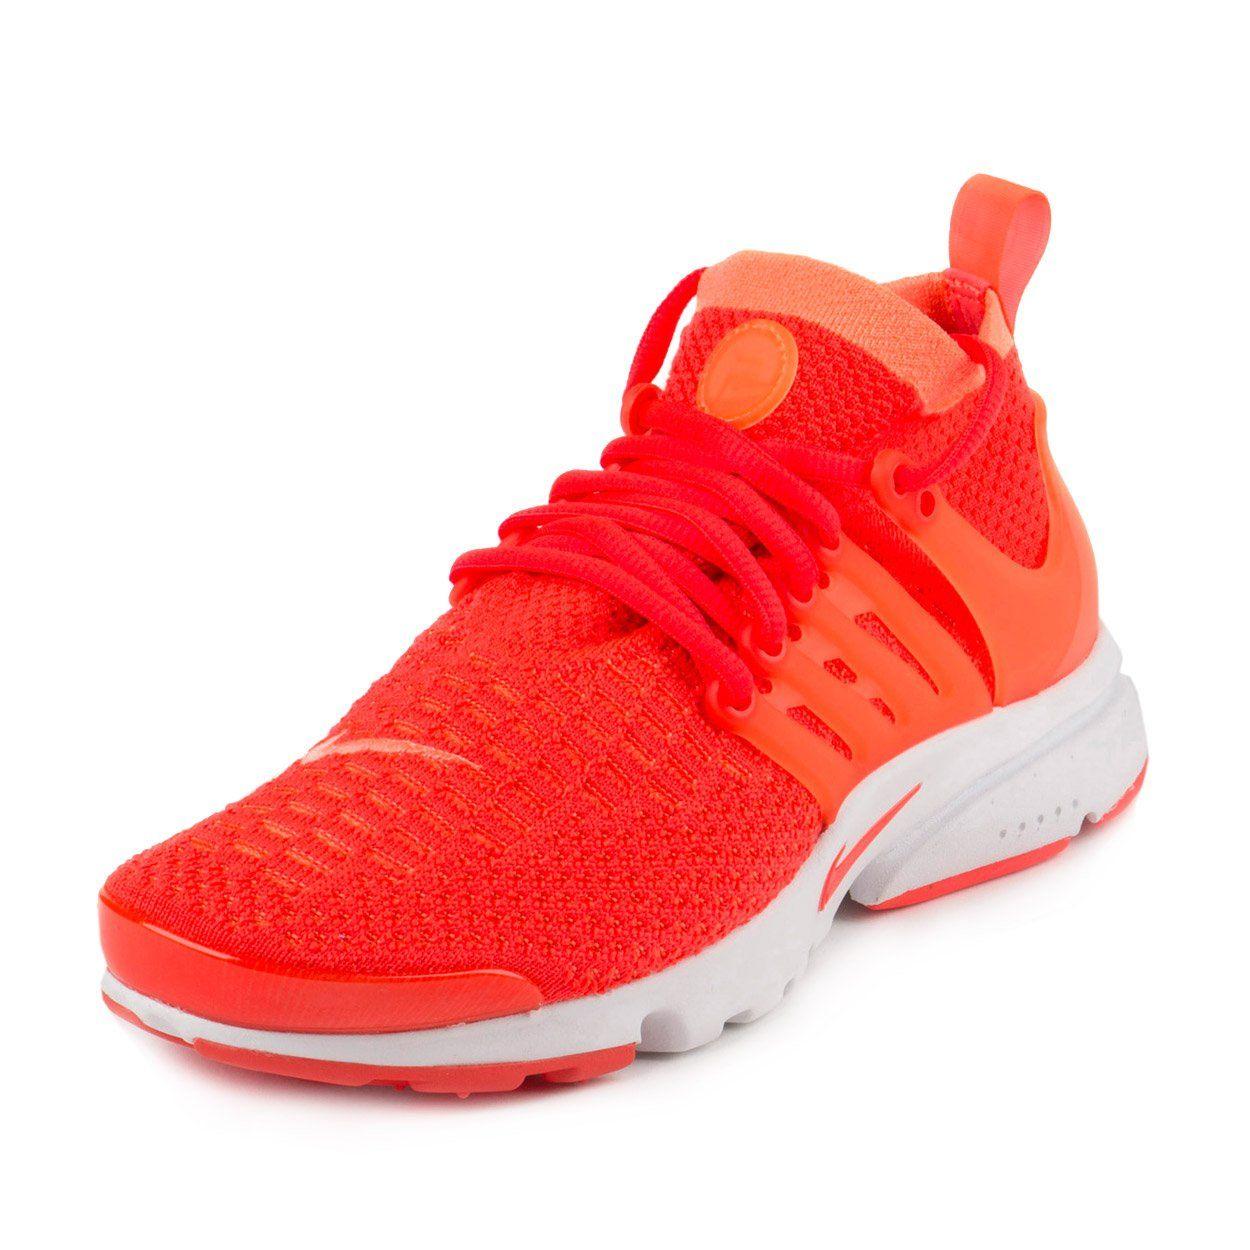 best website 3df2c 6b430 Nike Air Presto Bright Mango Crimson | Indian Television Dot Com